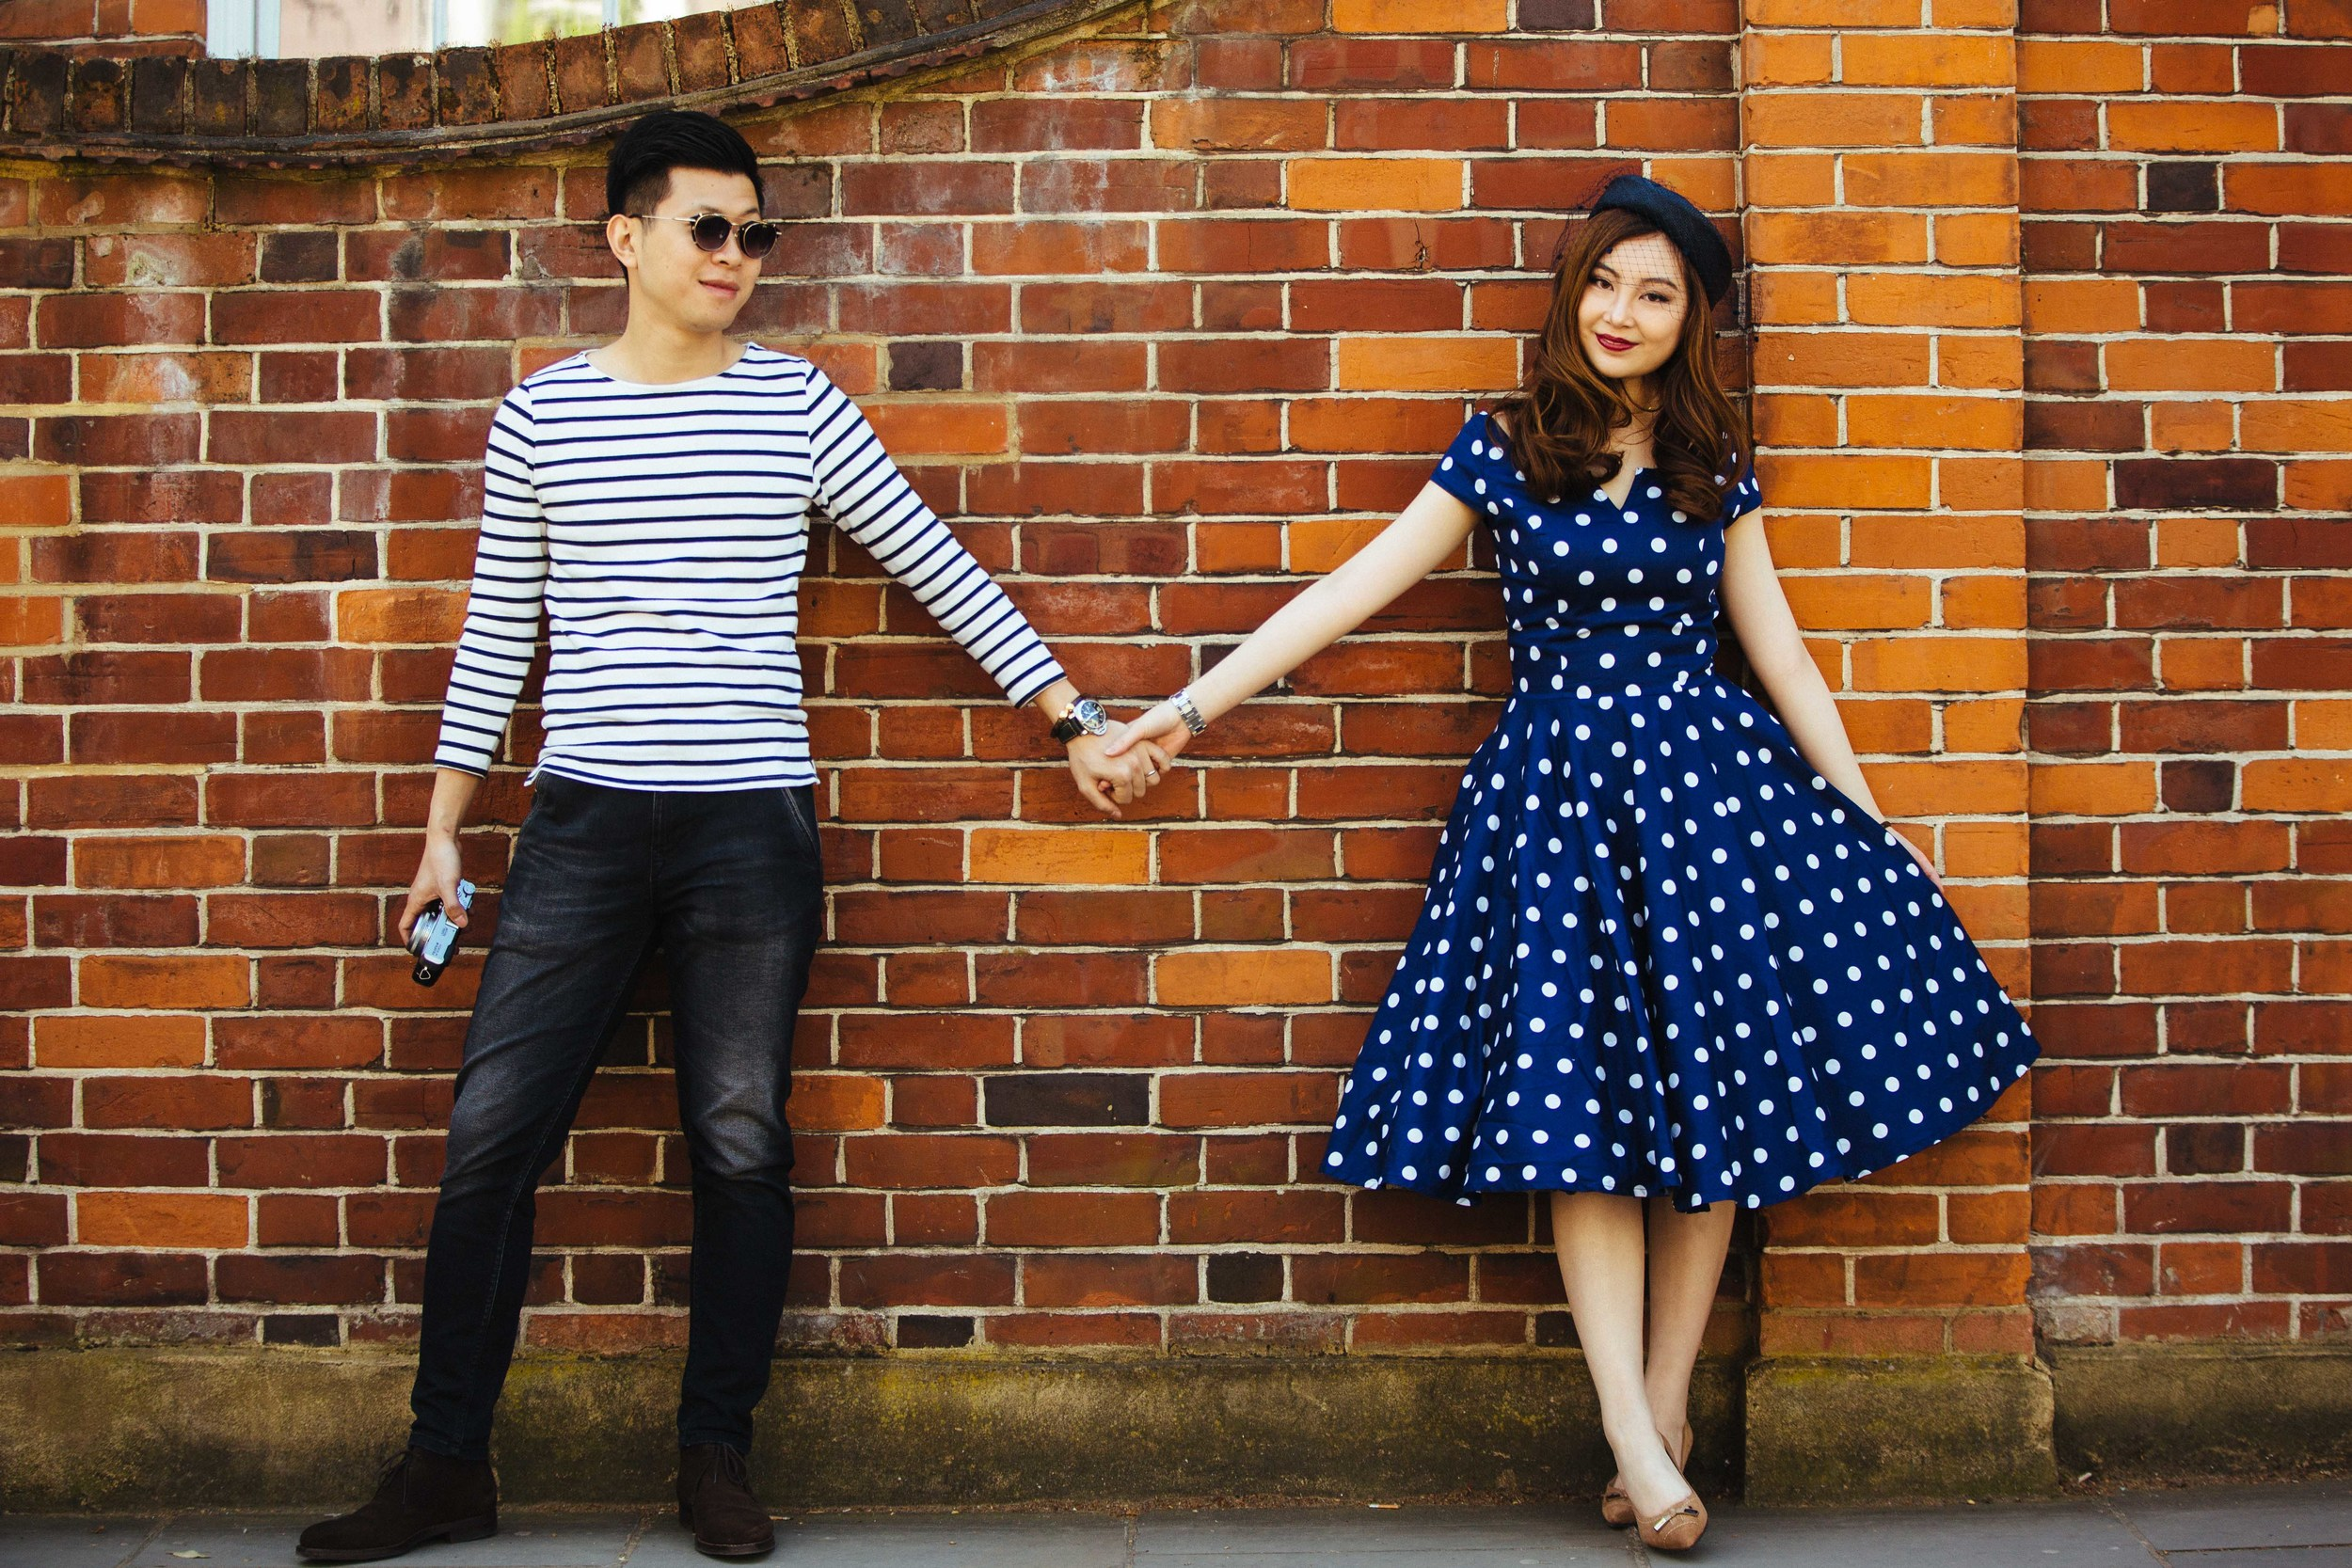 Asian-London-Vintage-Engagement-Wedding-Shoot-Notting-Hill-Regents-Park-5